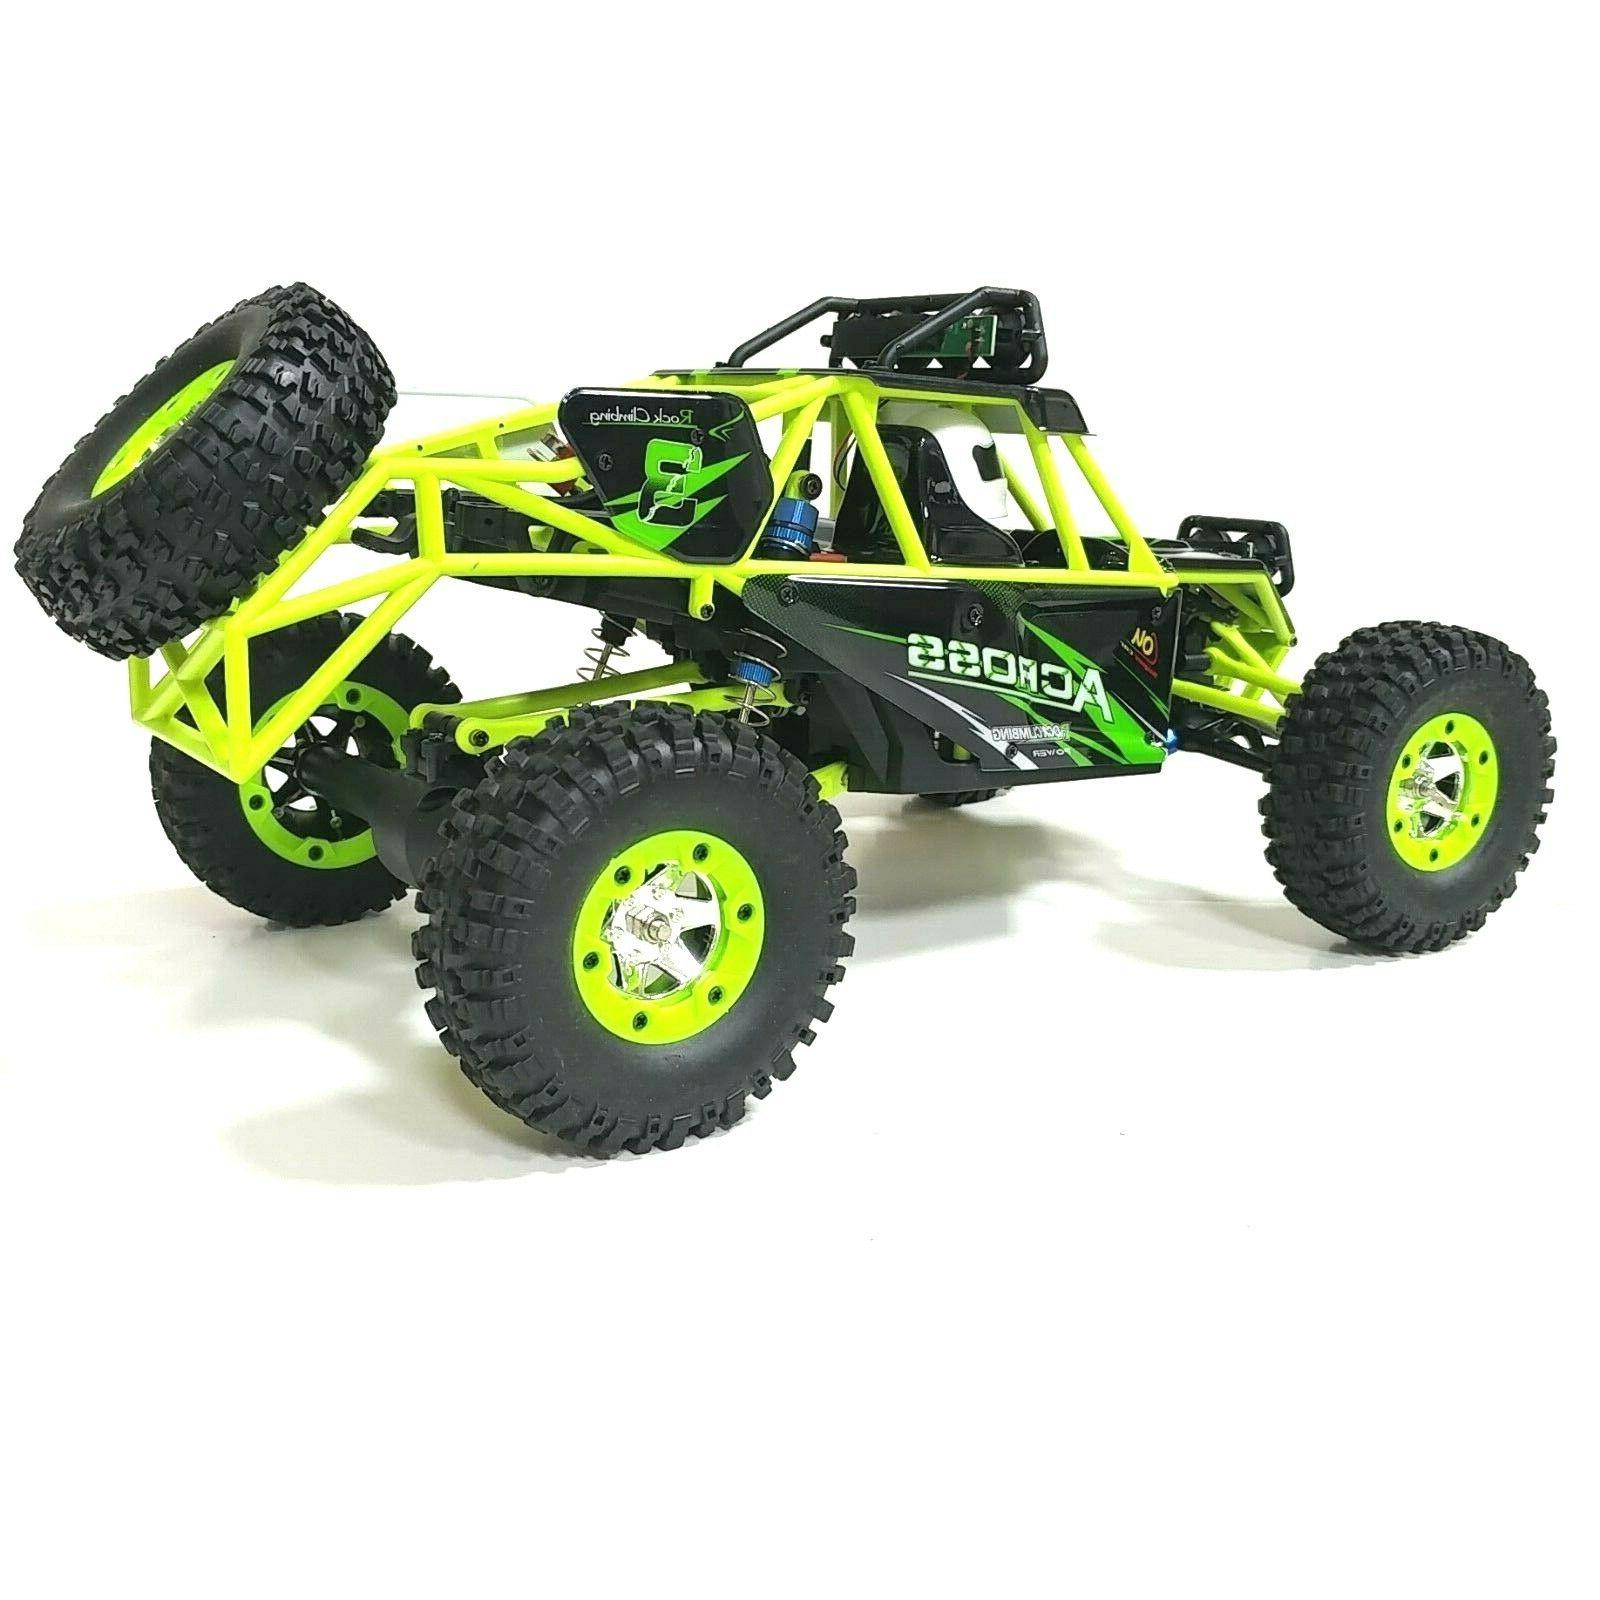 Wltoys 12428 2.4G 4WD RTR Crawler/racer. Ship FREE & in